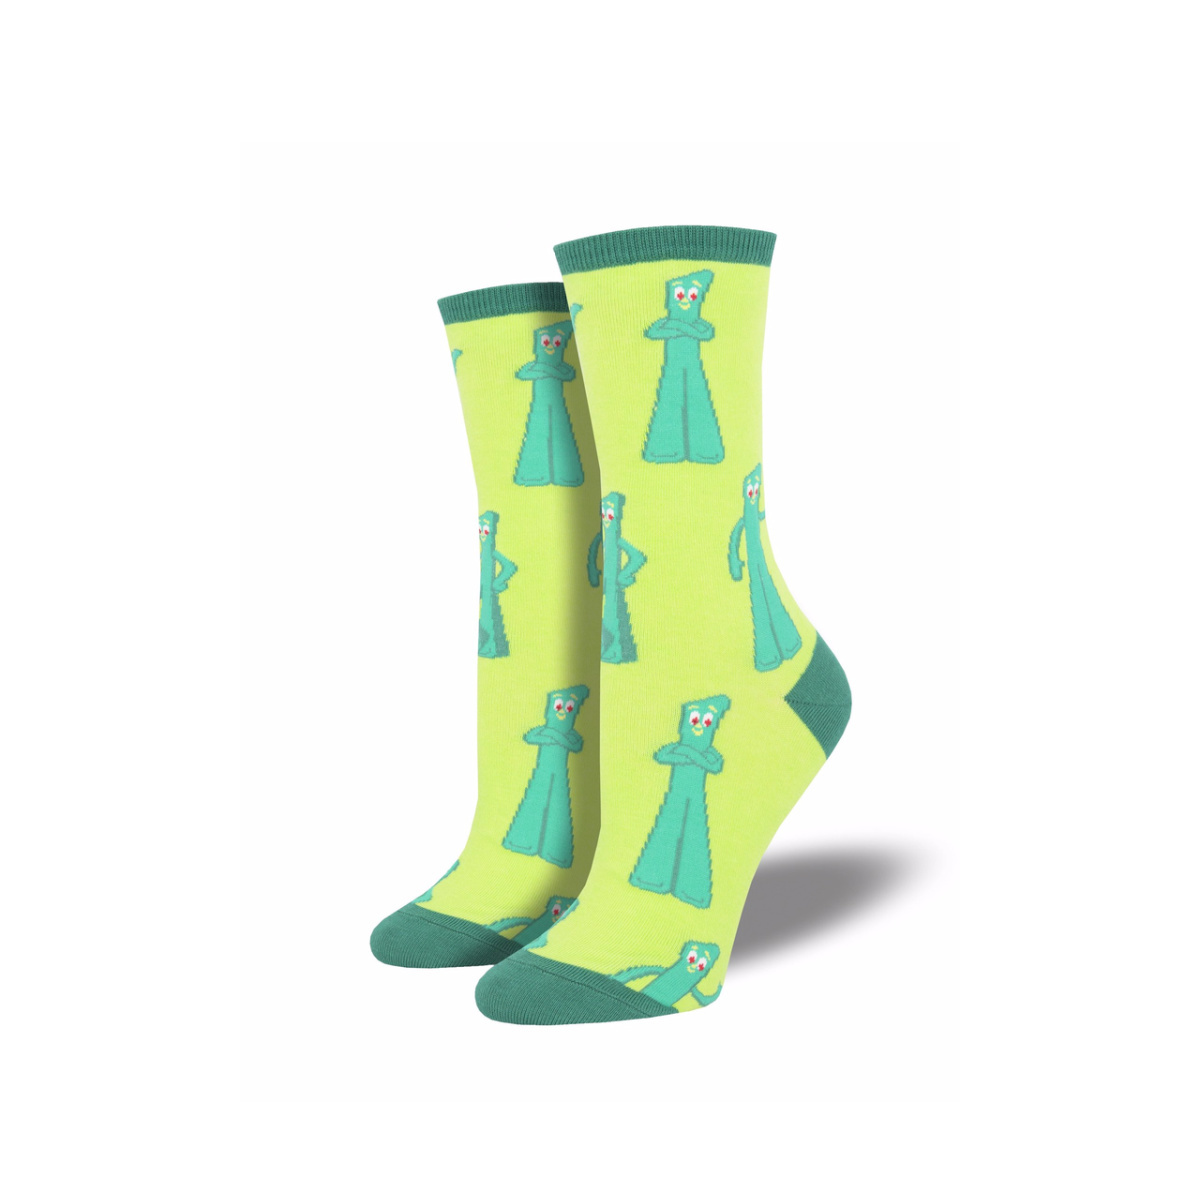 Socksmith Socksmith Women's Cotton Gumby Greetings Green